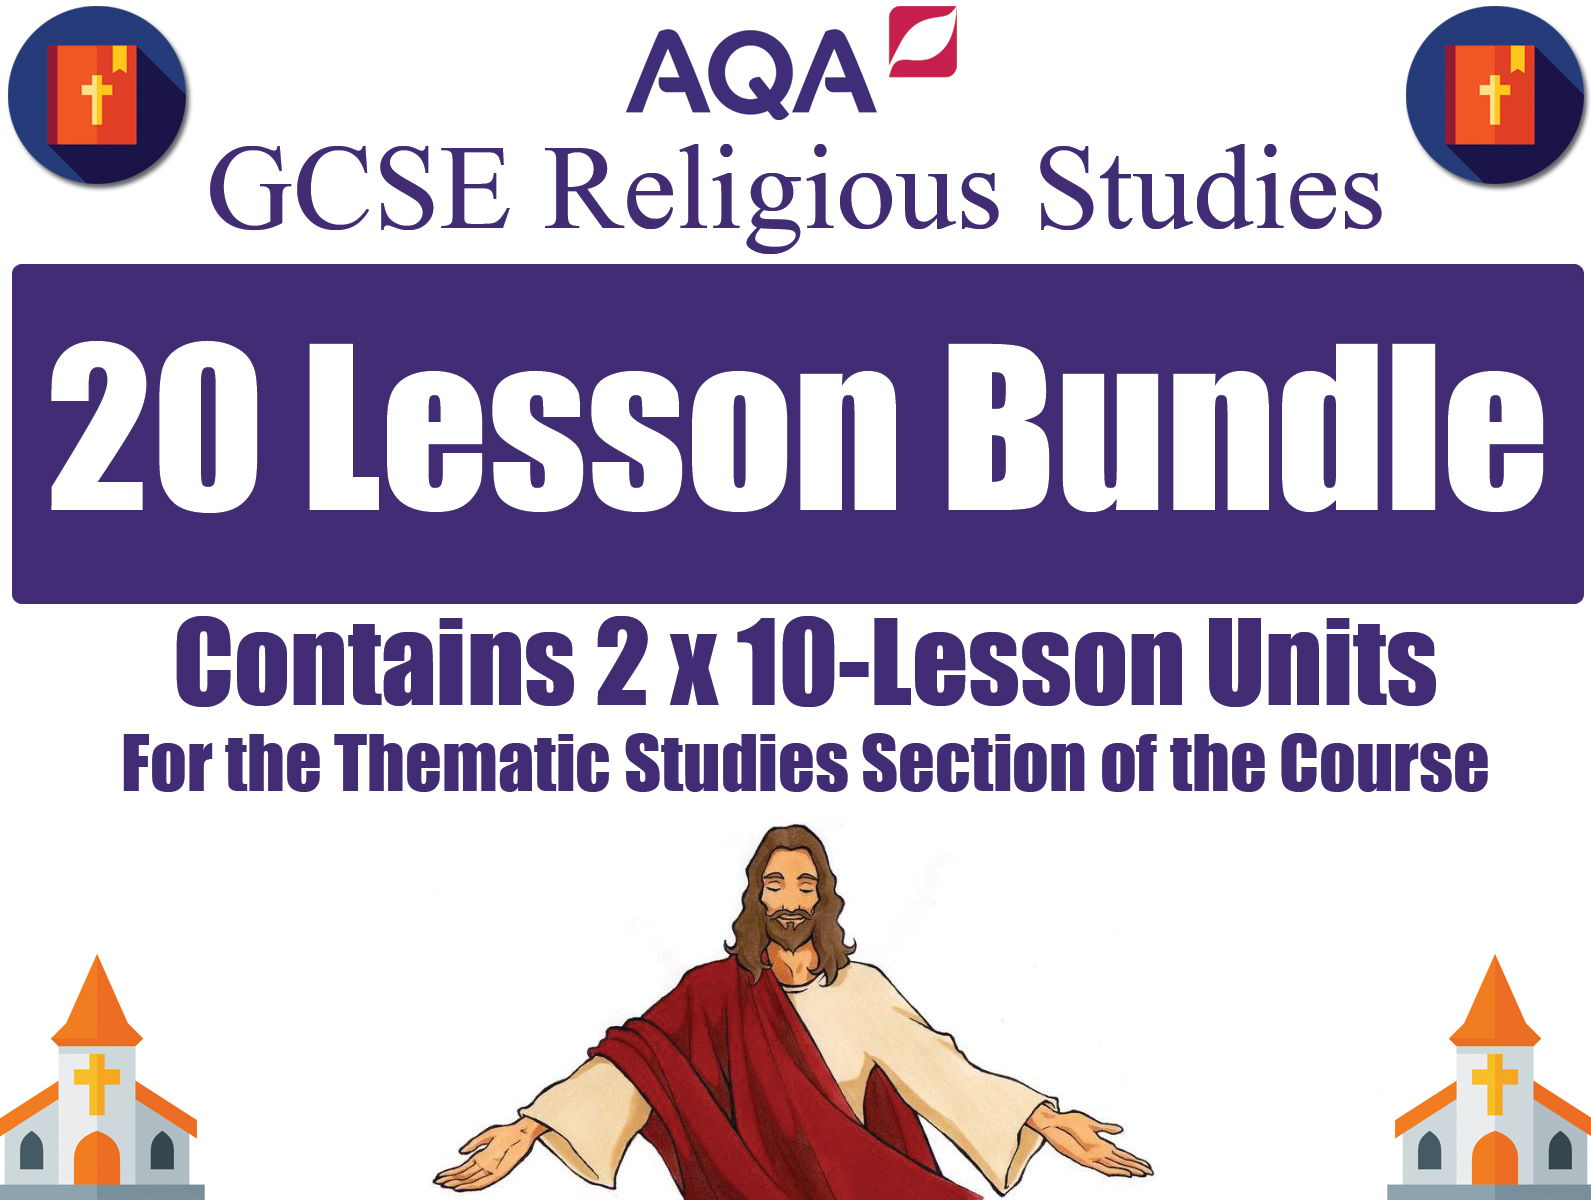 'The Existence of God & Revelation' + 'Religion, Peace & Conflict' (20 Lessons) [GCSE RS - AQA]